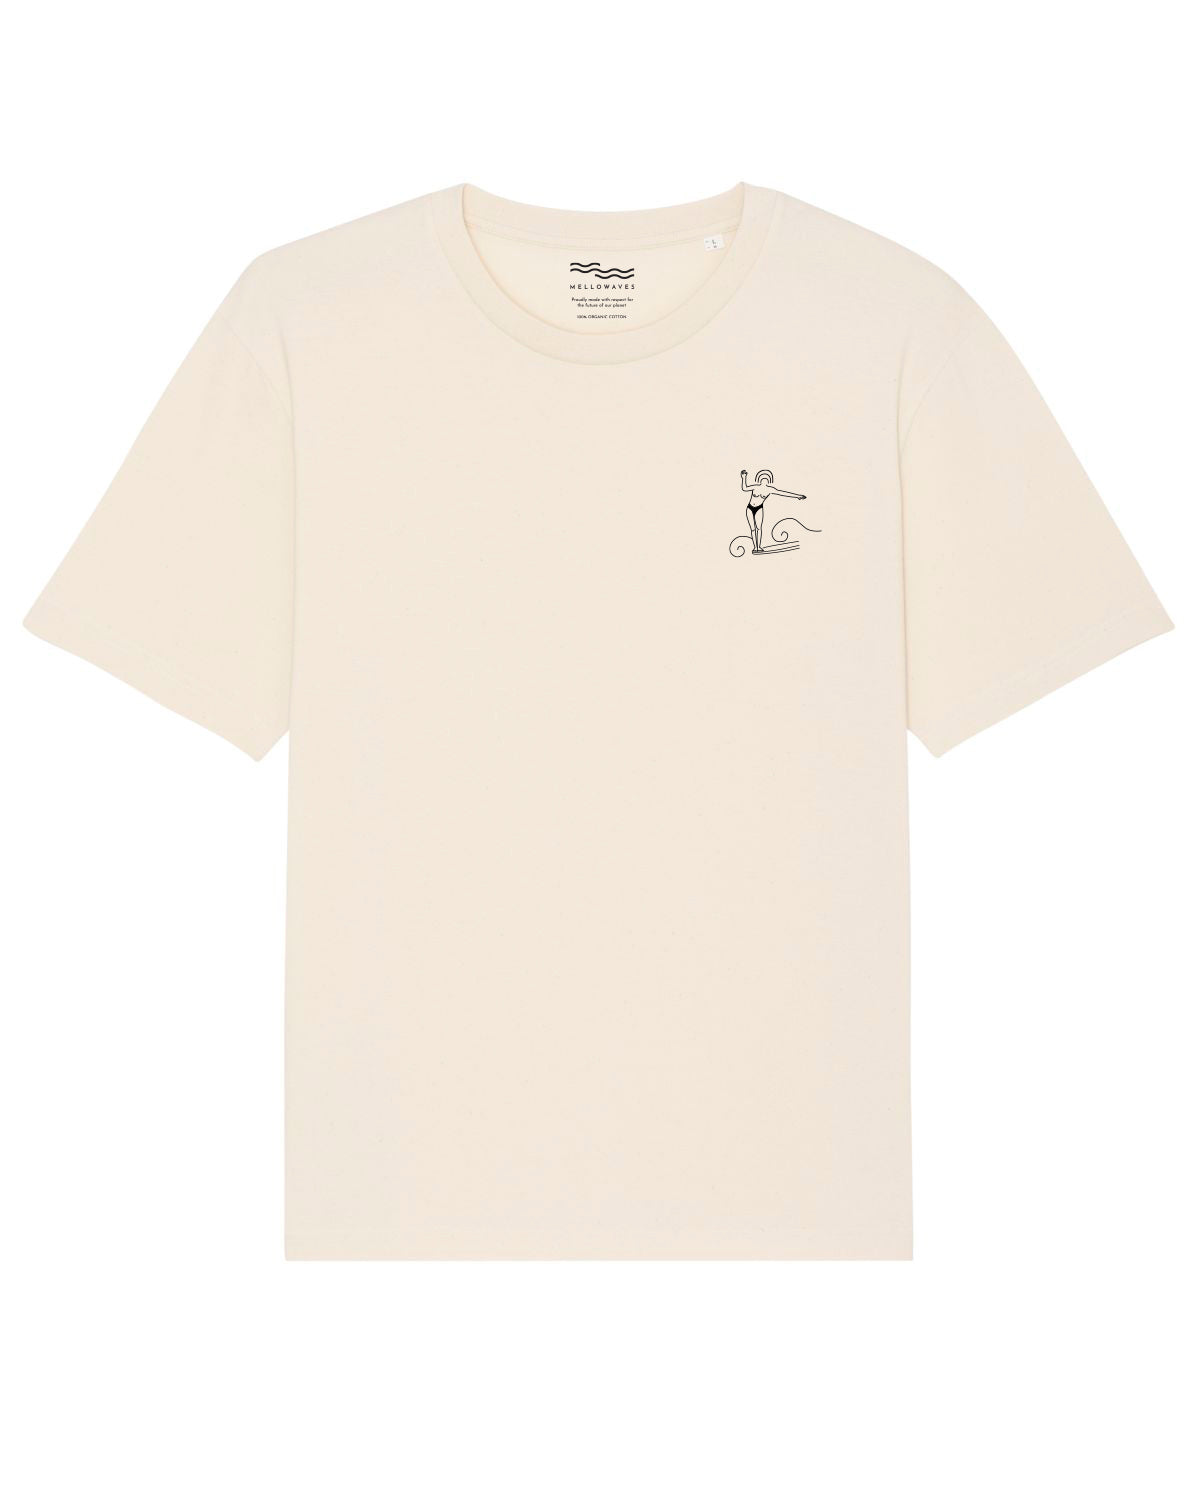 TALLULAH RAW T-SHIRT